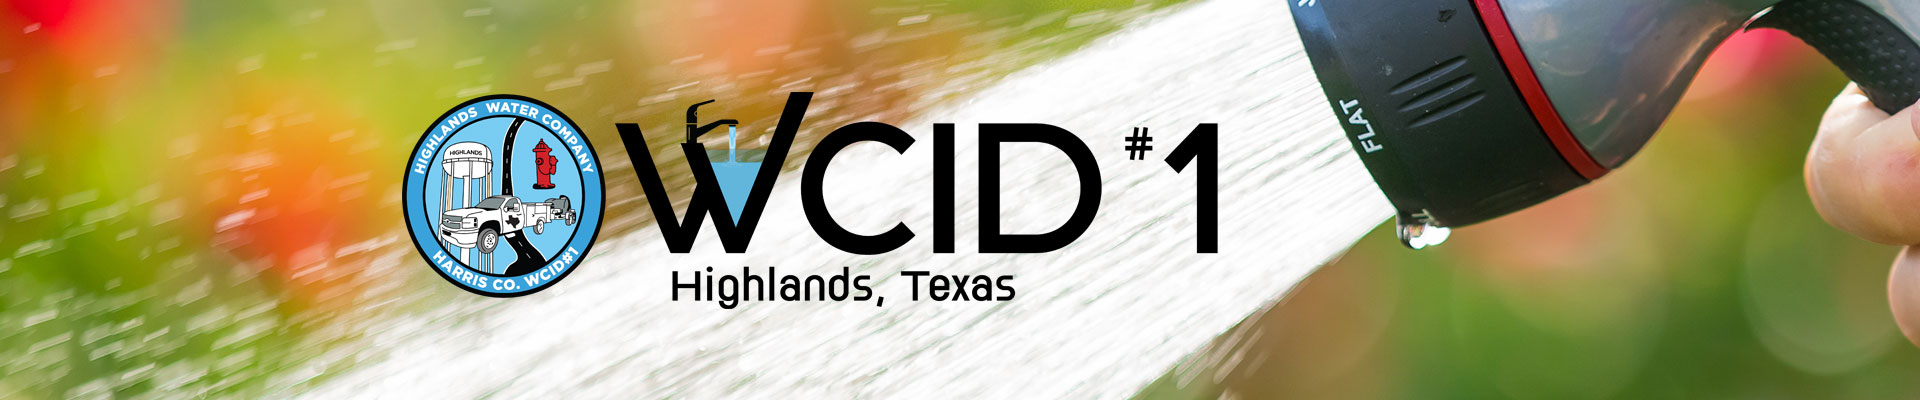 Highlands, Texas water - Wcid 1